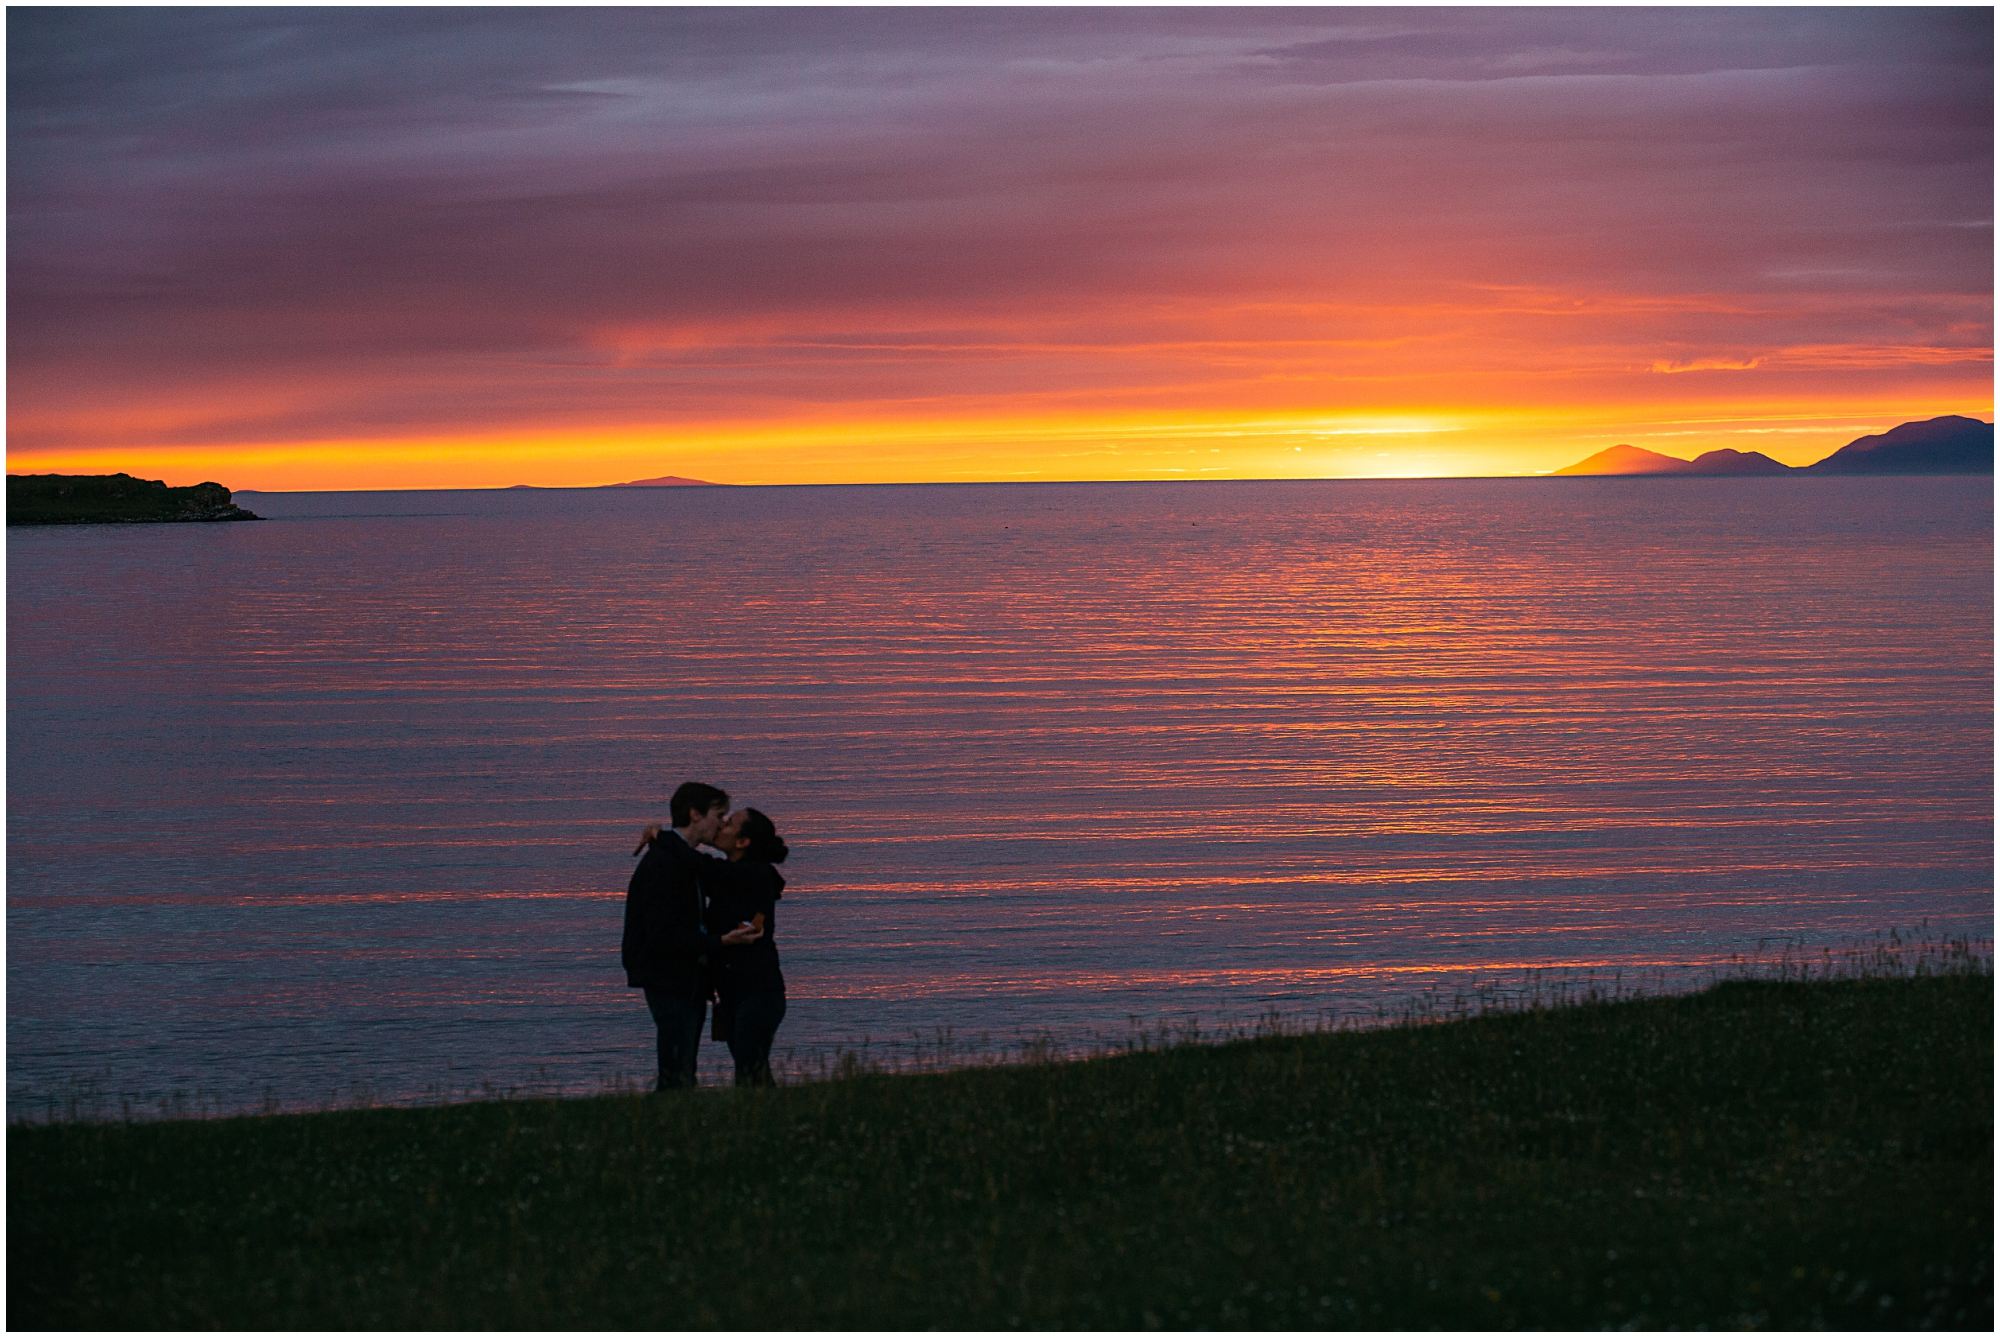 Silhoutted couple embrace against sunset lit sea and sky